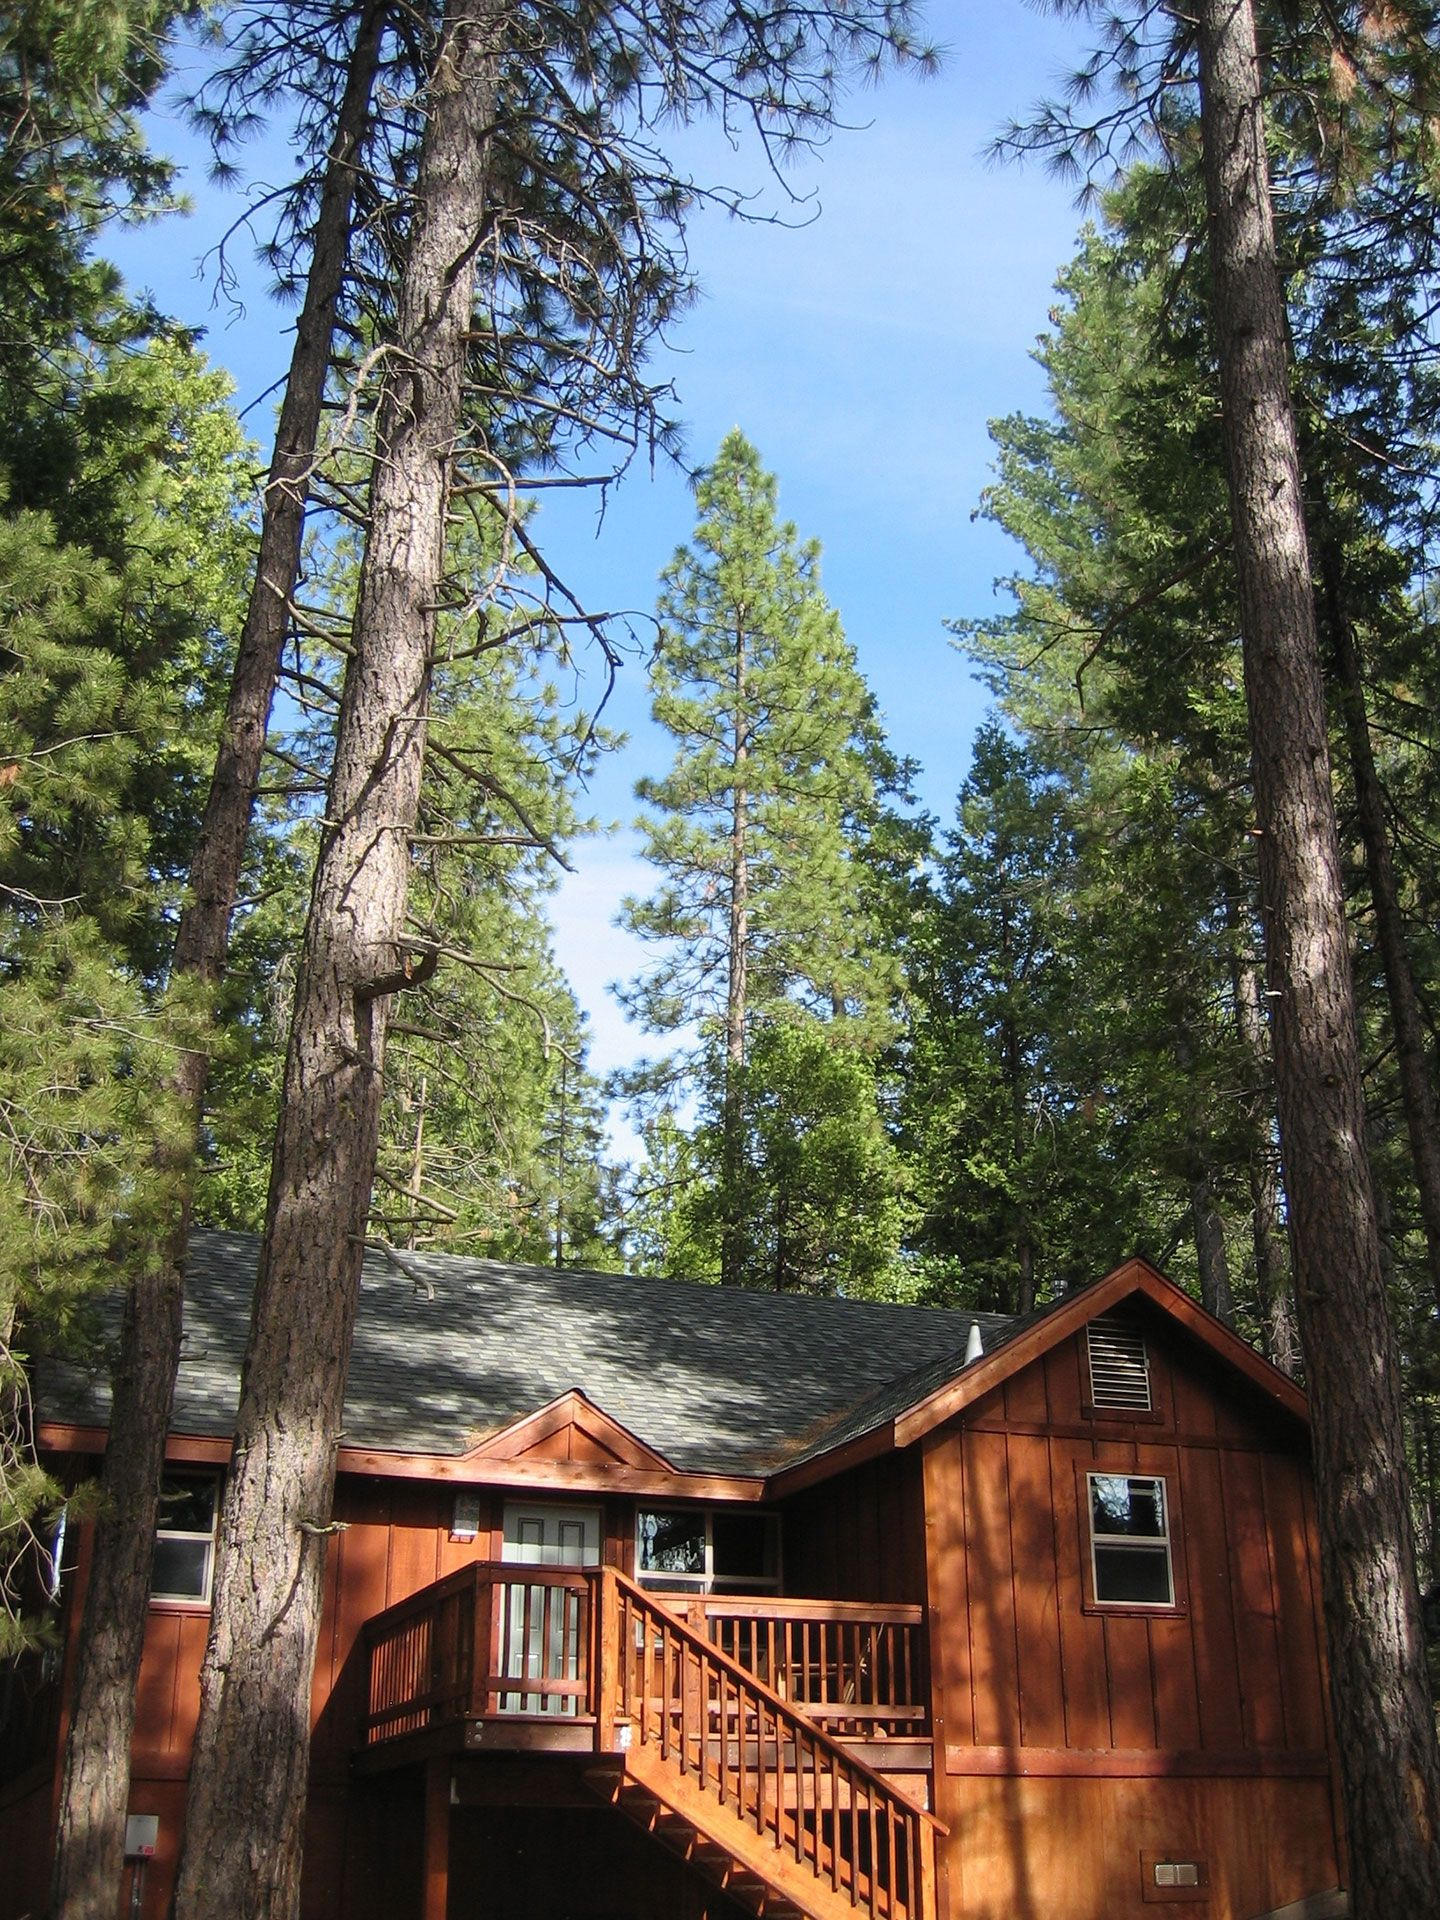 lodging in visitorsguide rentalhomes yosemite view rent madera online homes cabins cover vymc vacation county for